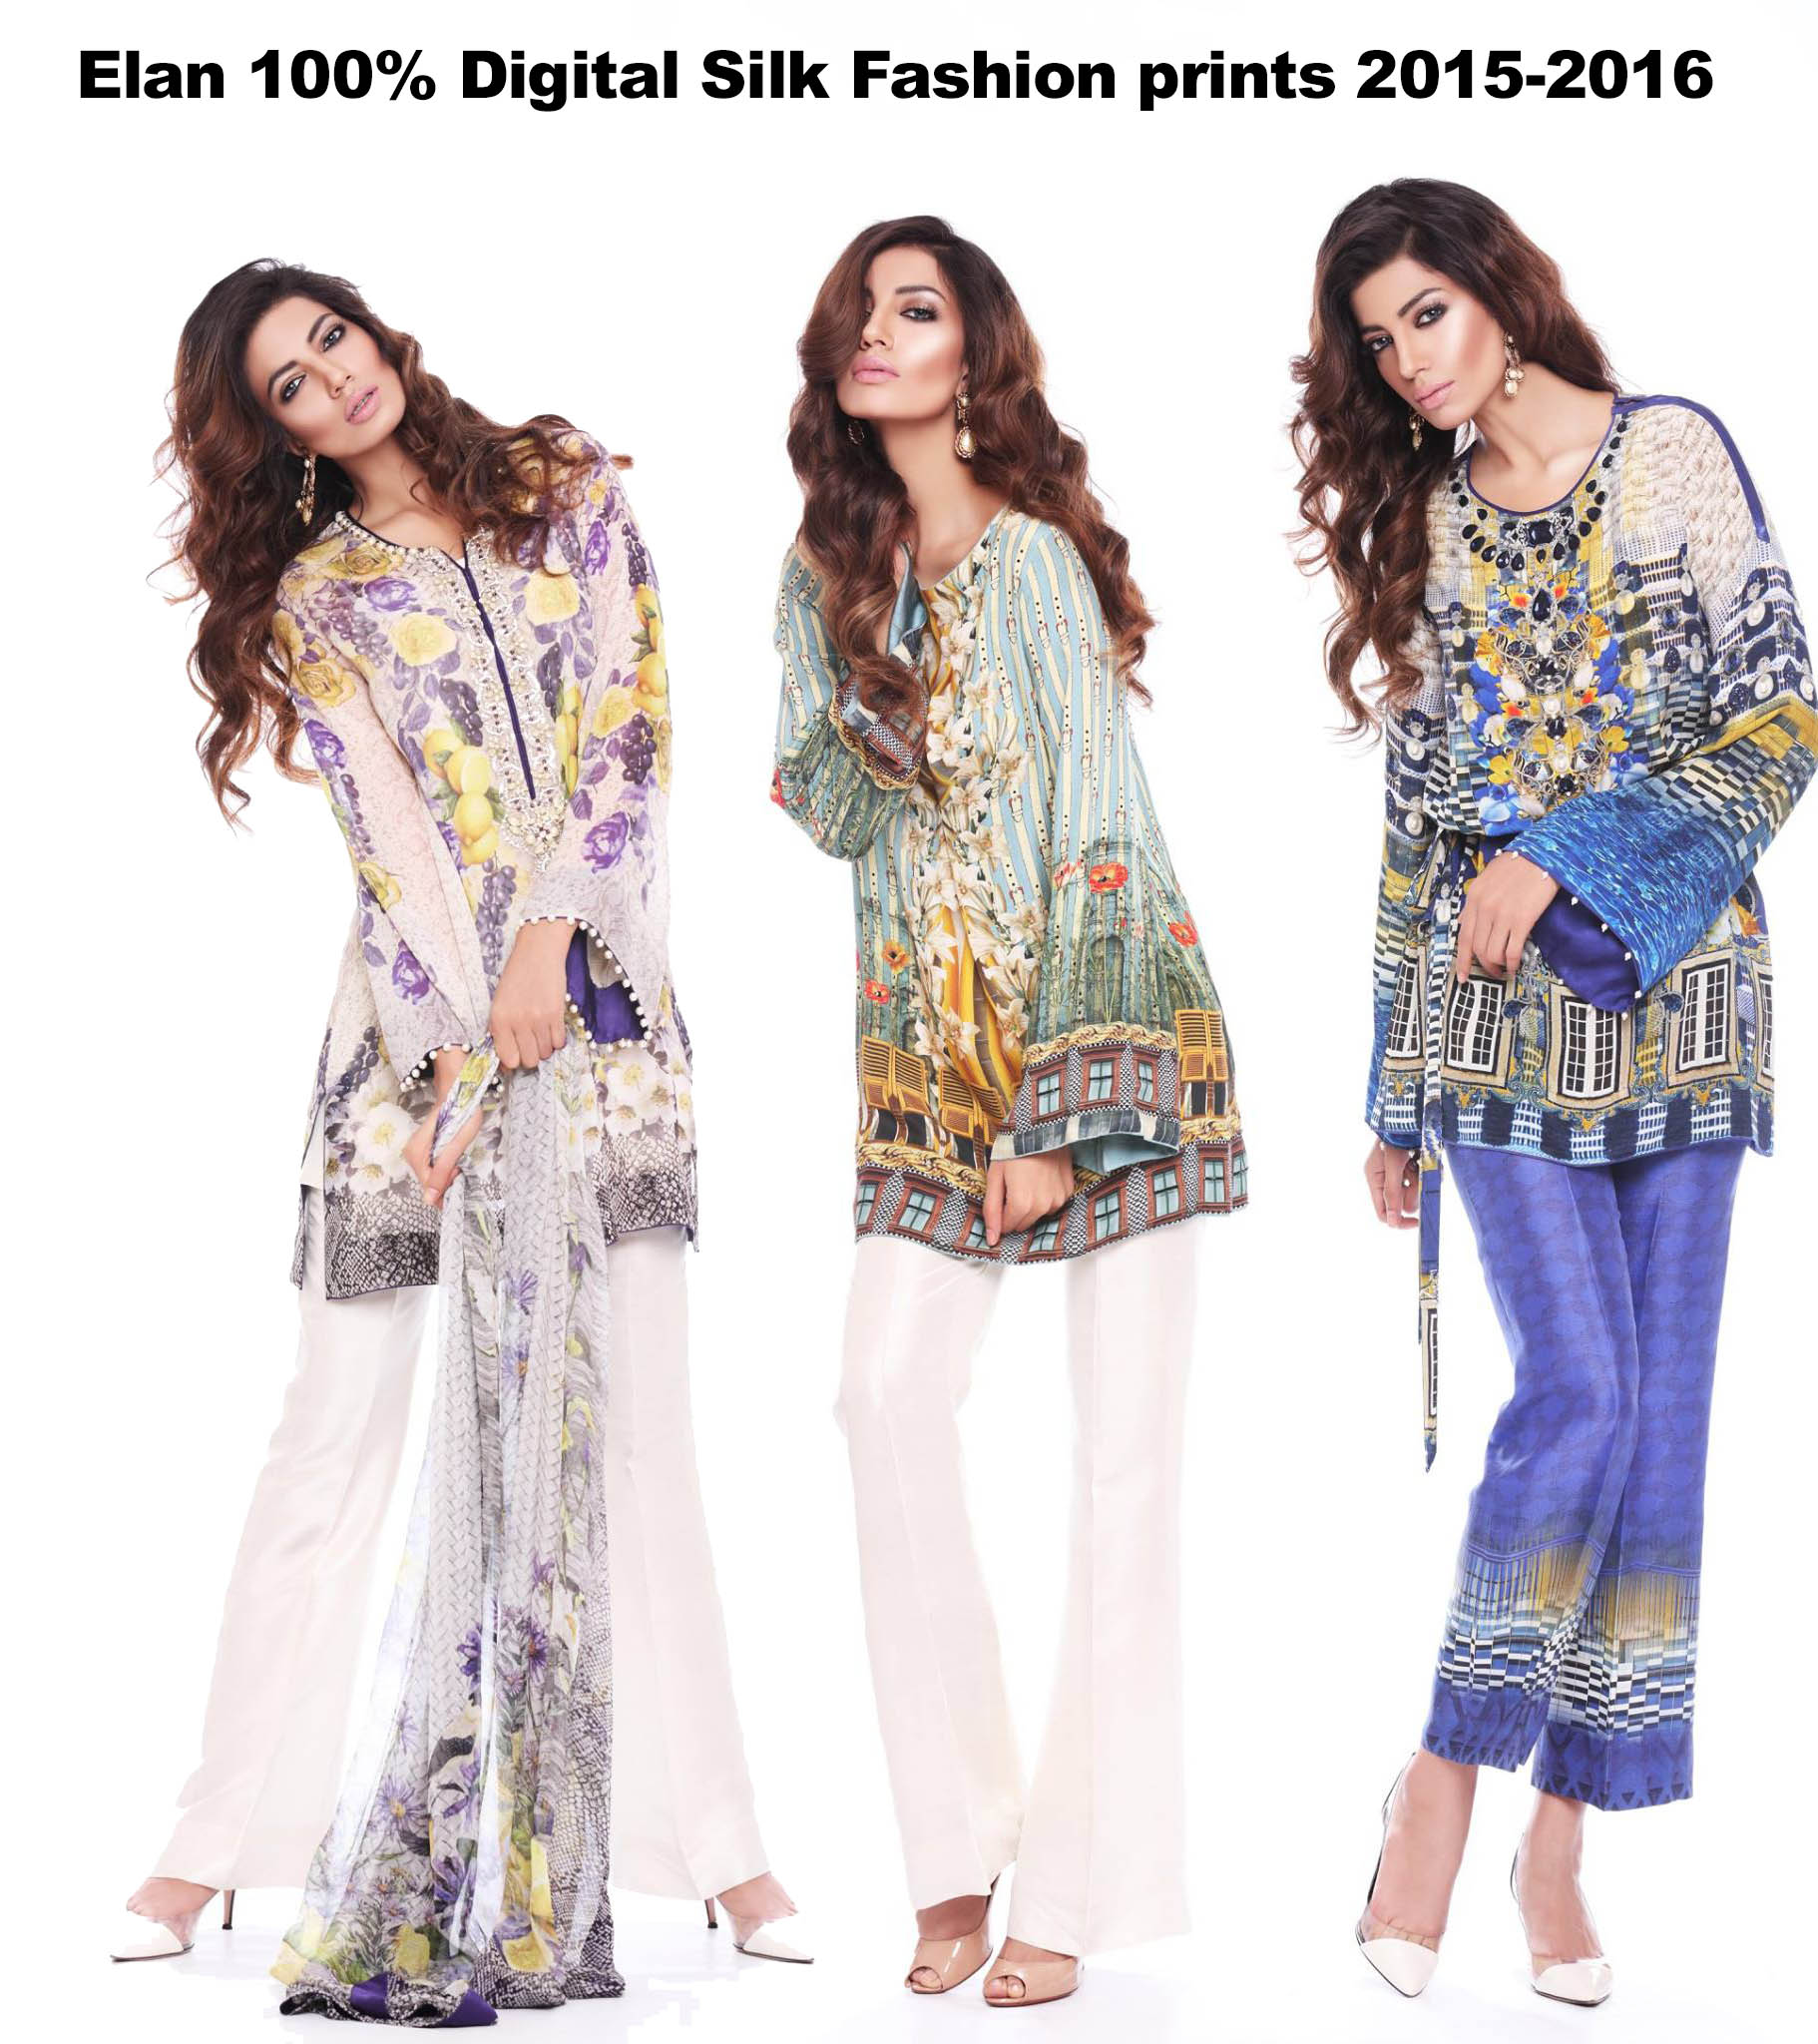 Elan pure Digital Silk prints Fashion Dressess Kurties Top and pants 2015-2016 (22)